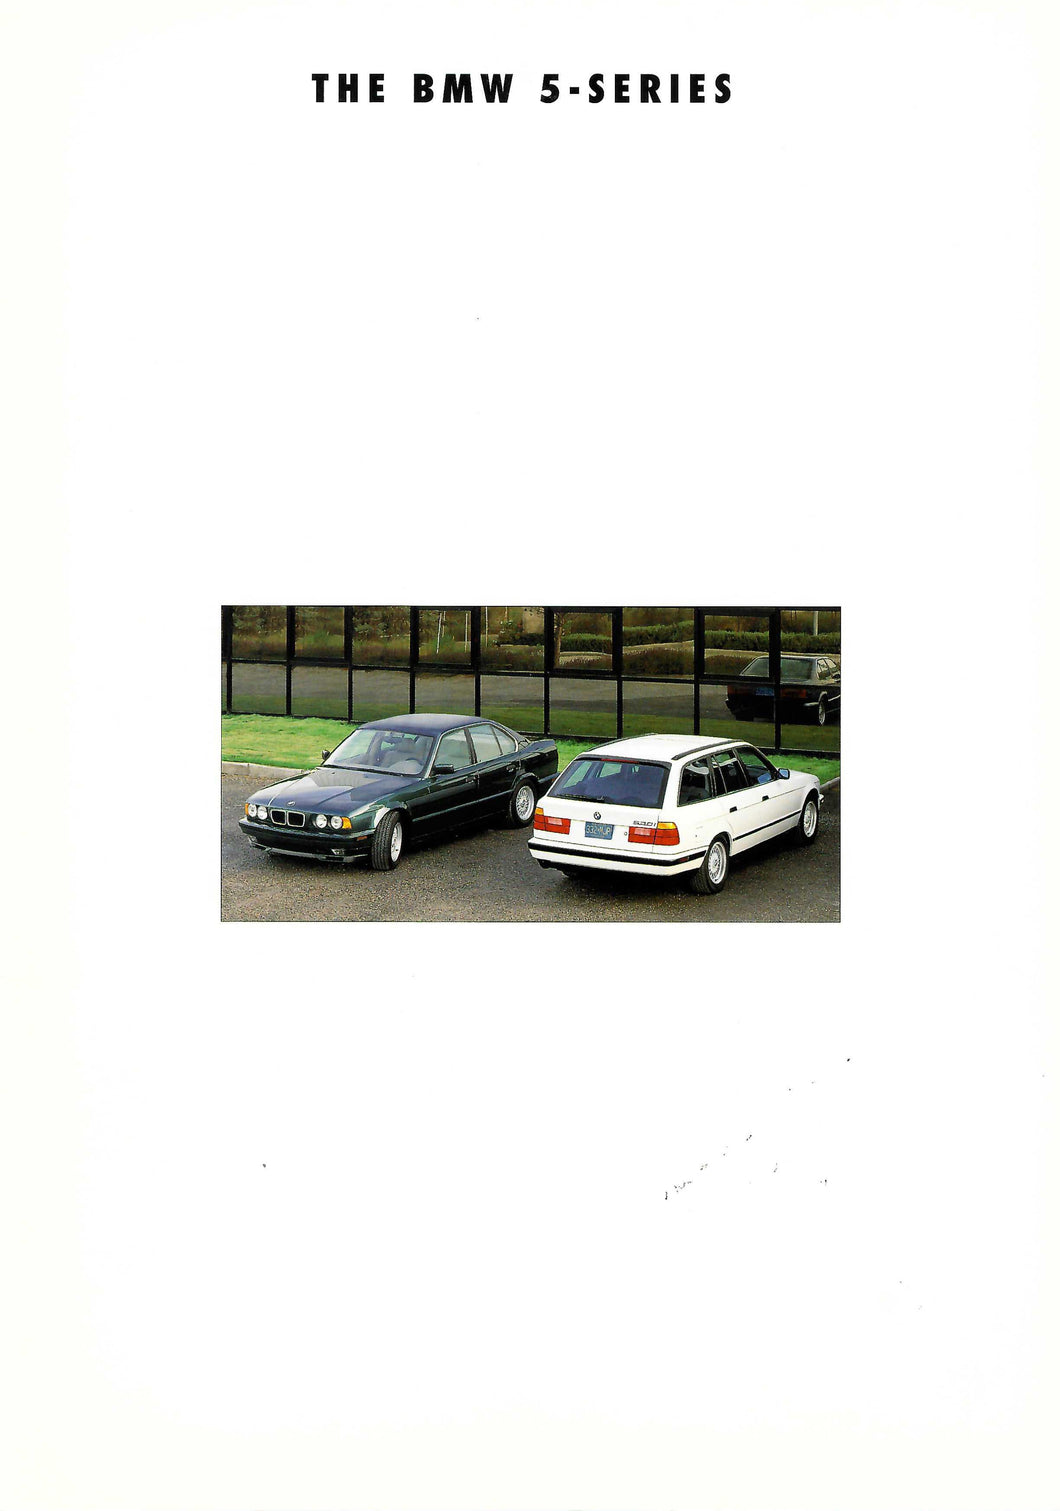 Brochure - The BMW 5-Series (E34)